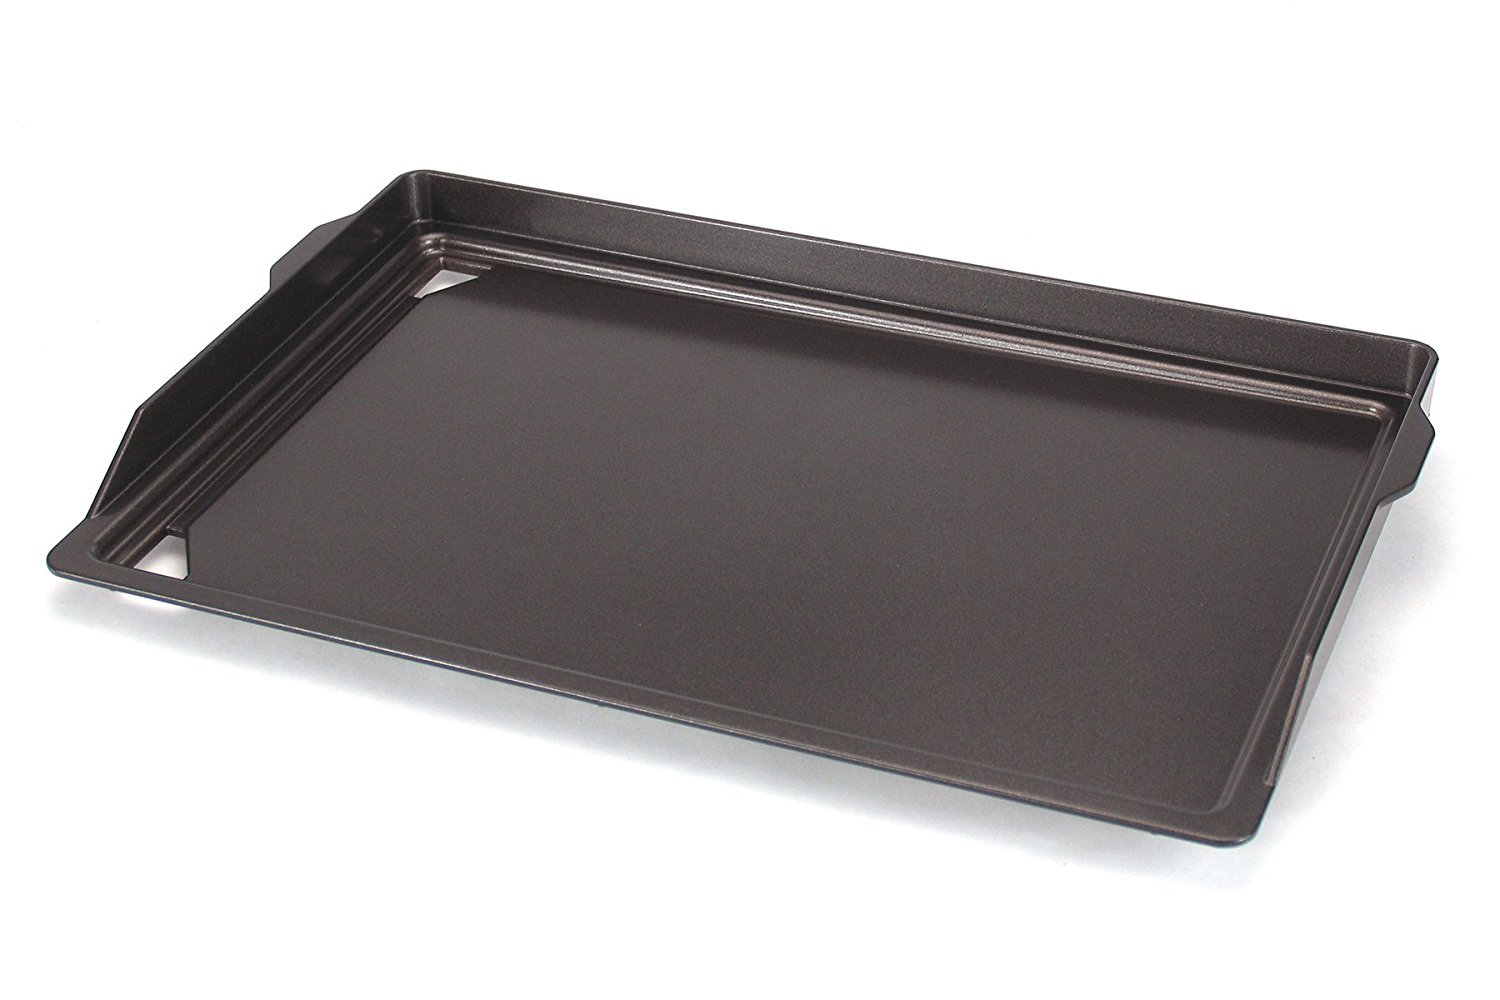 Chef's Choice G880 Griddle Plate for Use with the Chef's Choice Indoor Grill, Models 880 and 878 [並行輸入品]   B01IC162NC